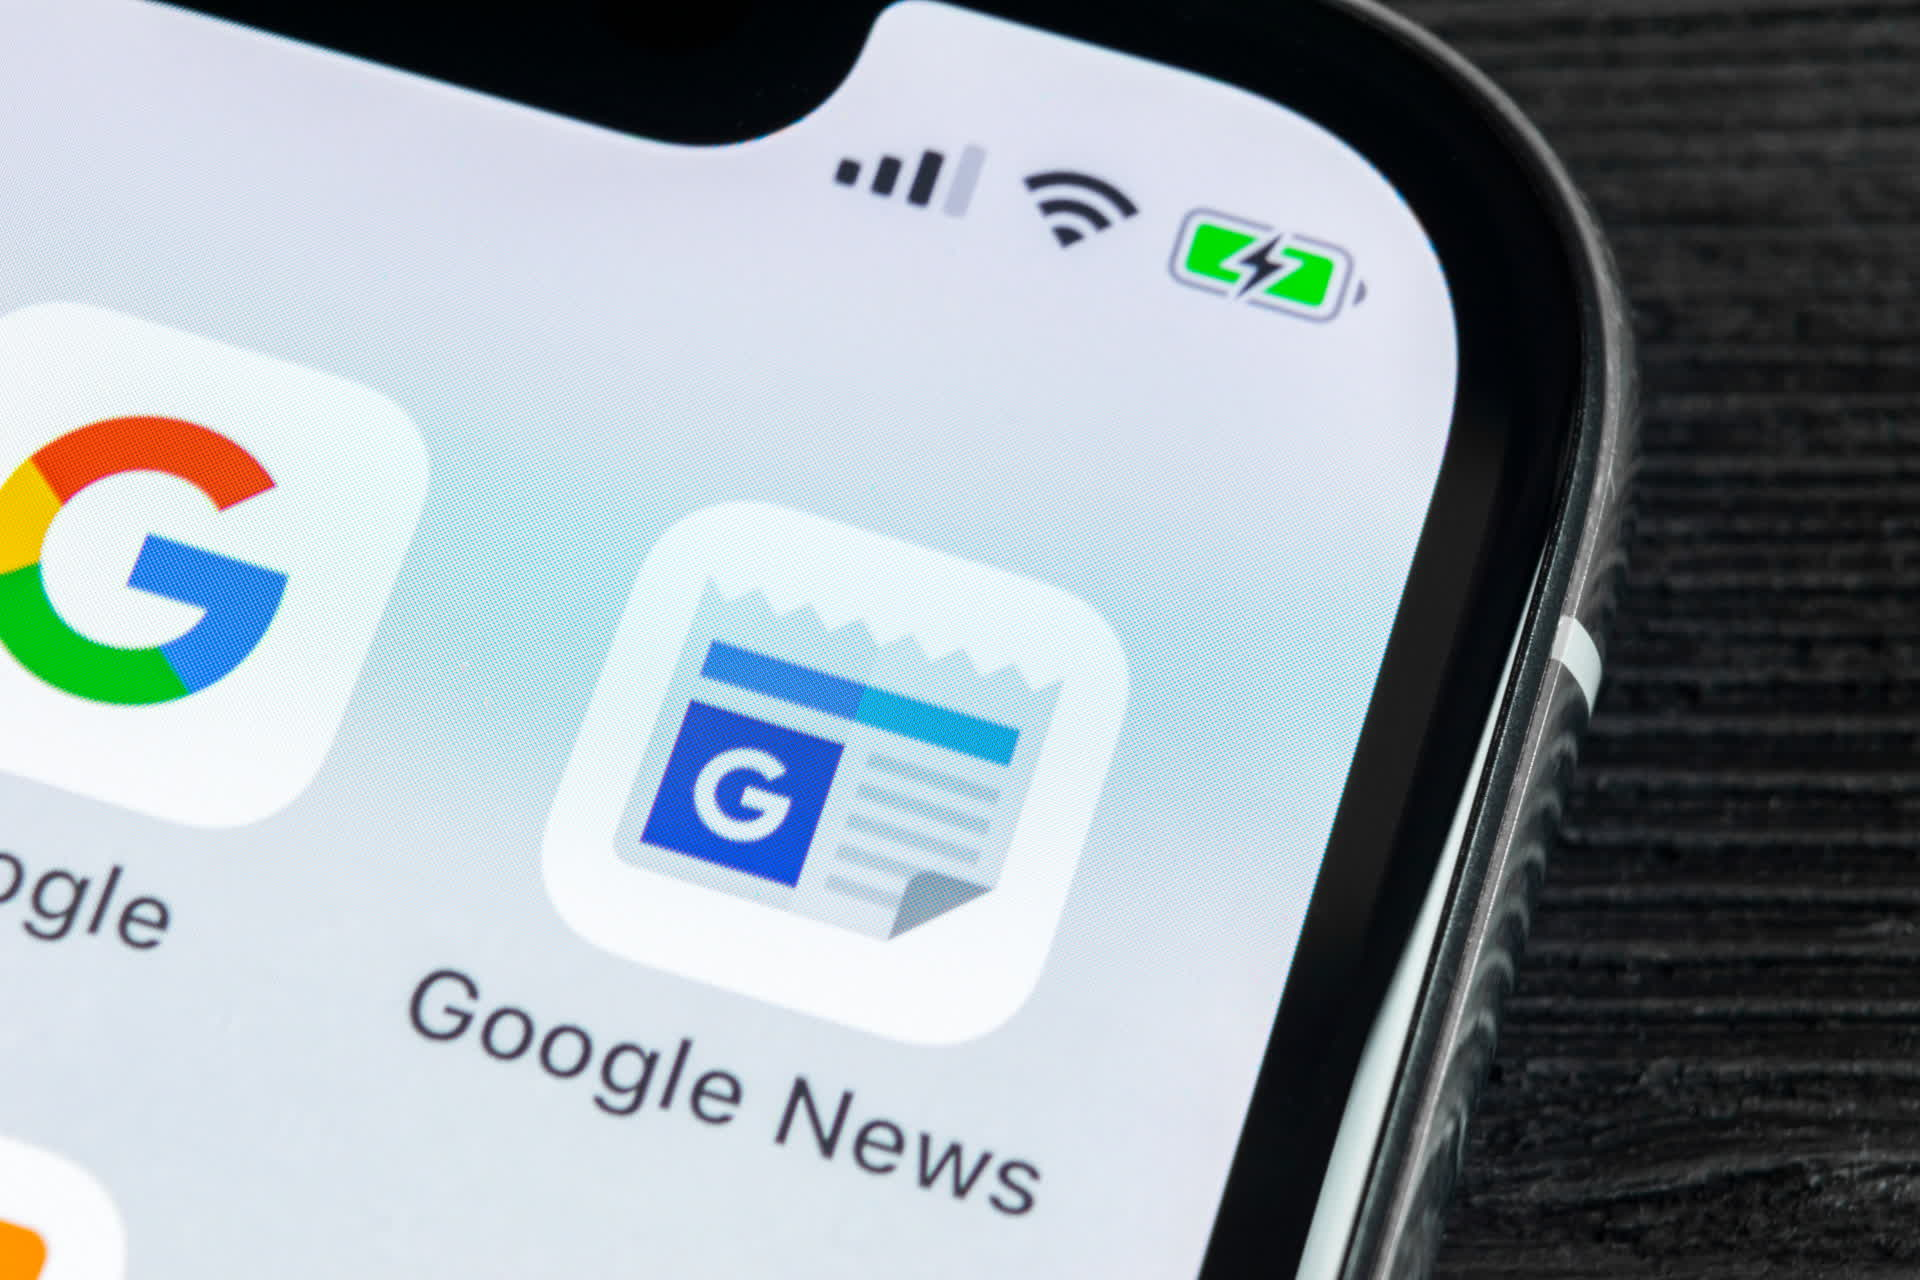 Google will let users bypass select publisher paywalls through Google News